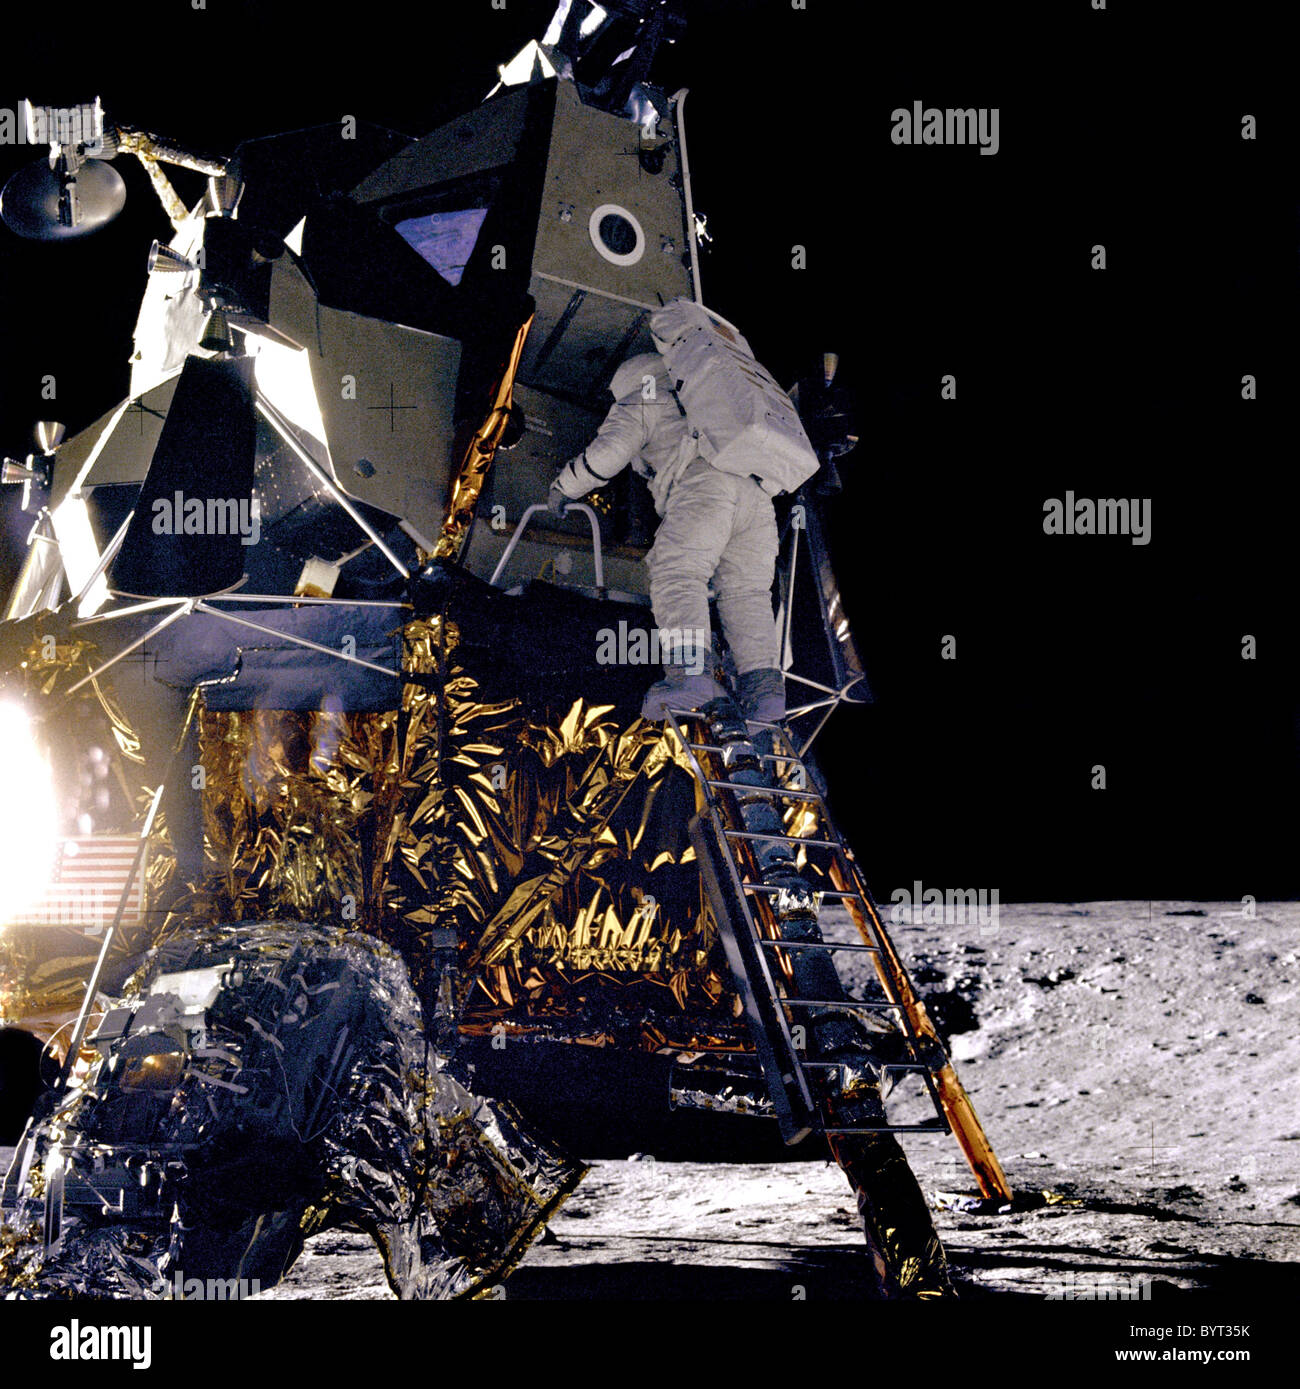 Alan L. Bean on the ladder of the Lunar Module during the Apollo 12 mission. - Stock Image